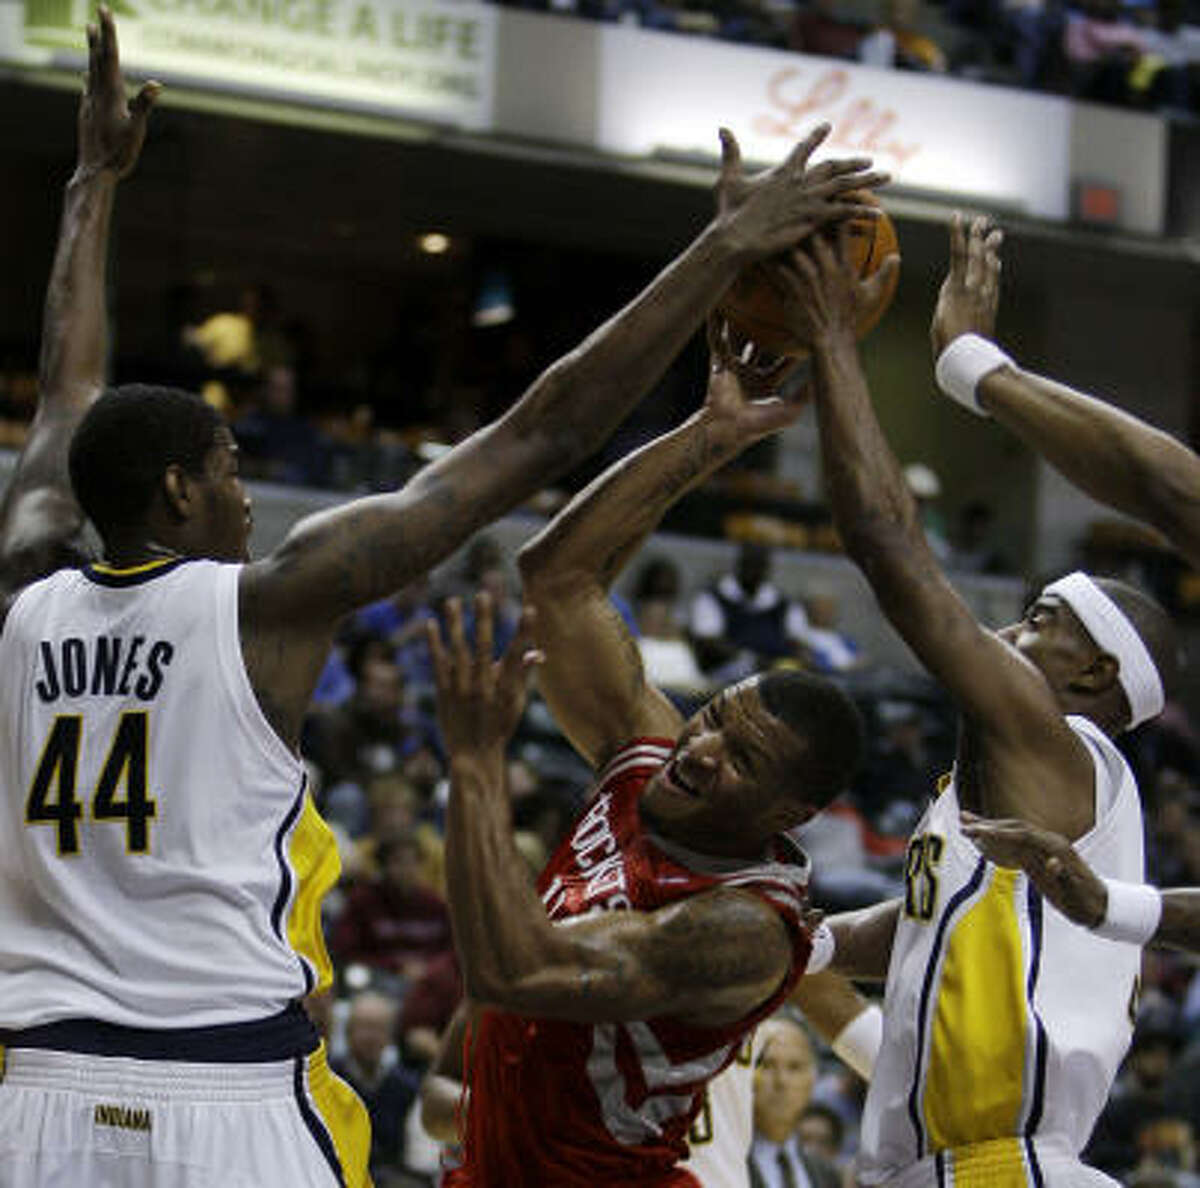 Rockets guard Will Conroy, center, drives to the basket against Pacers center Solomon Jones (44) and guard T.J. Ford during the third quarter.